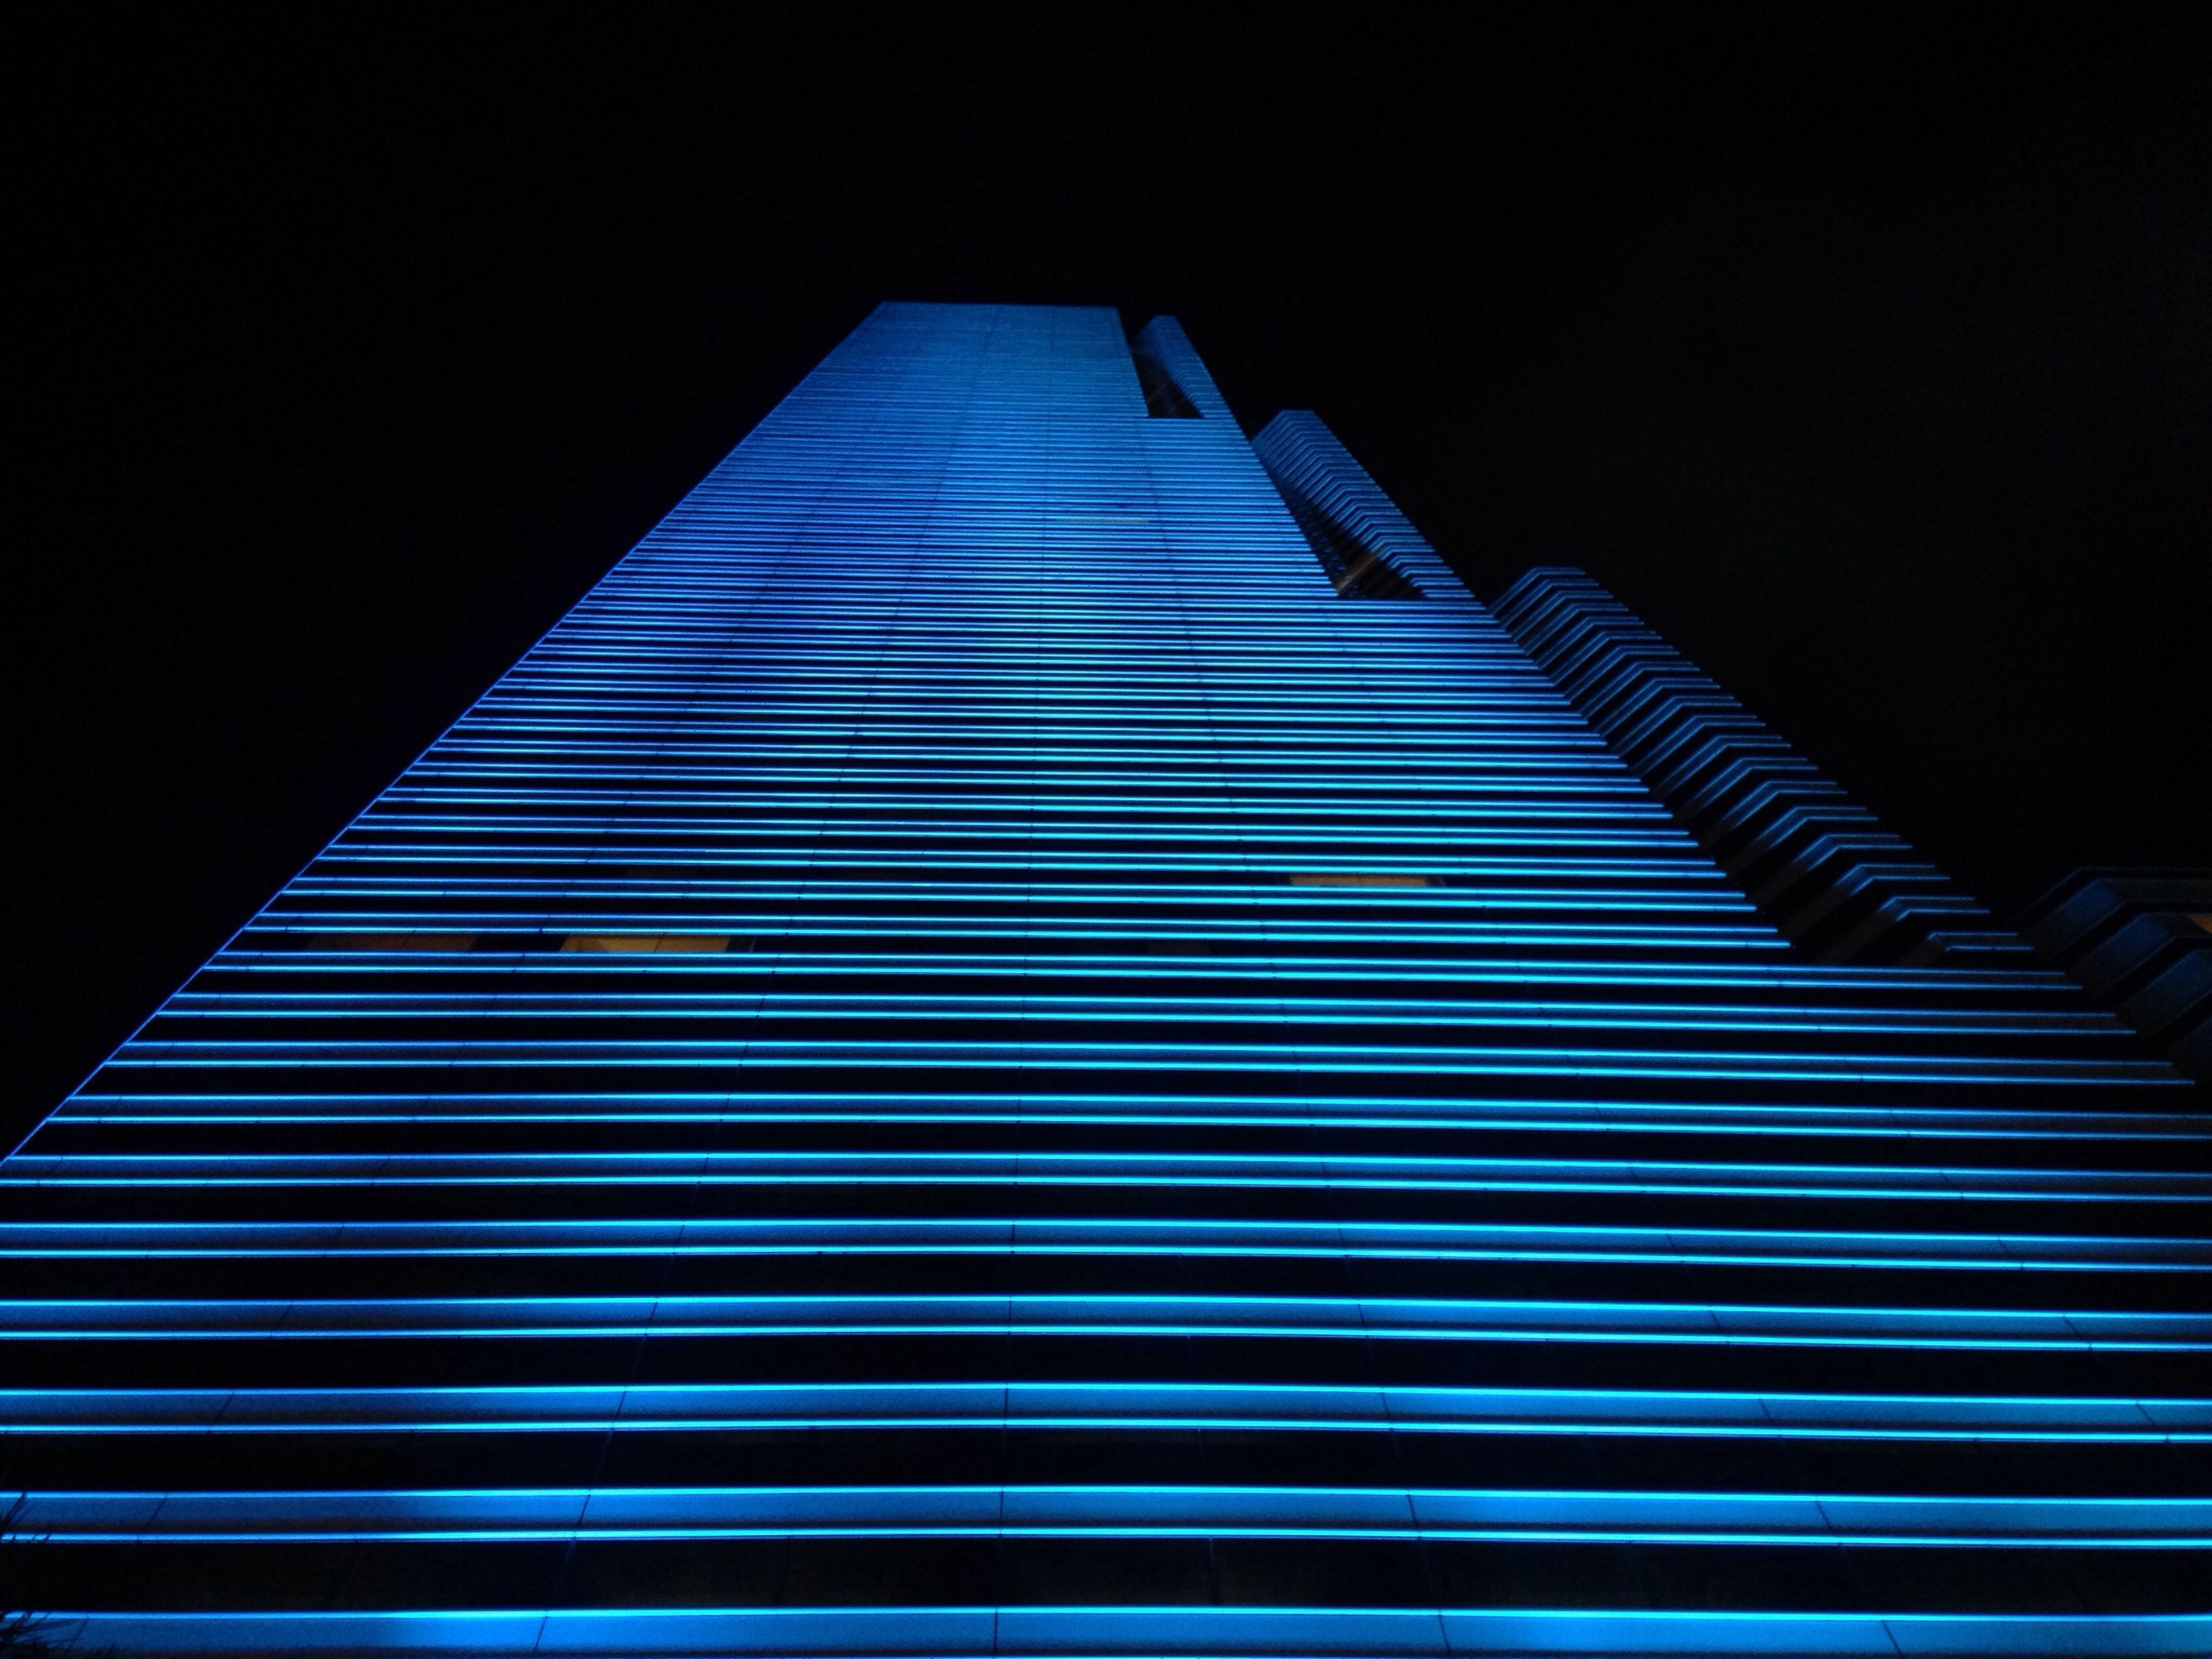 low angle view, architecture, building exterior, built structure, modern, skyscraper, office building, tall - high, night, city, illuminated, pattern, clear sky, building, blue, sky, no people, tower, outdoors, tall